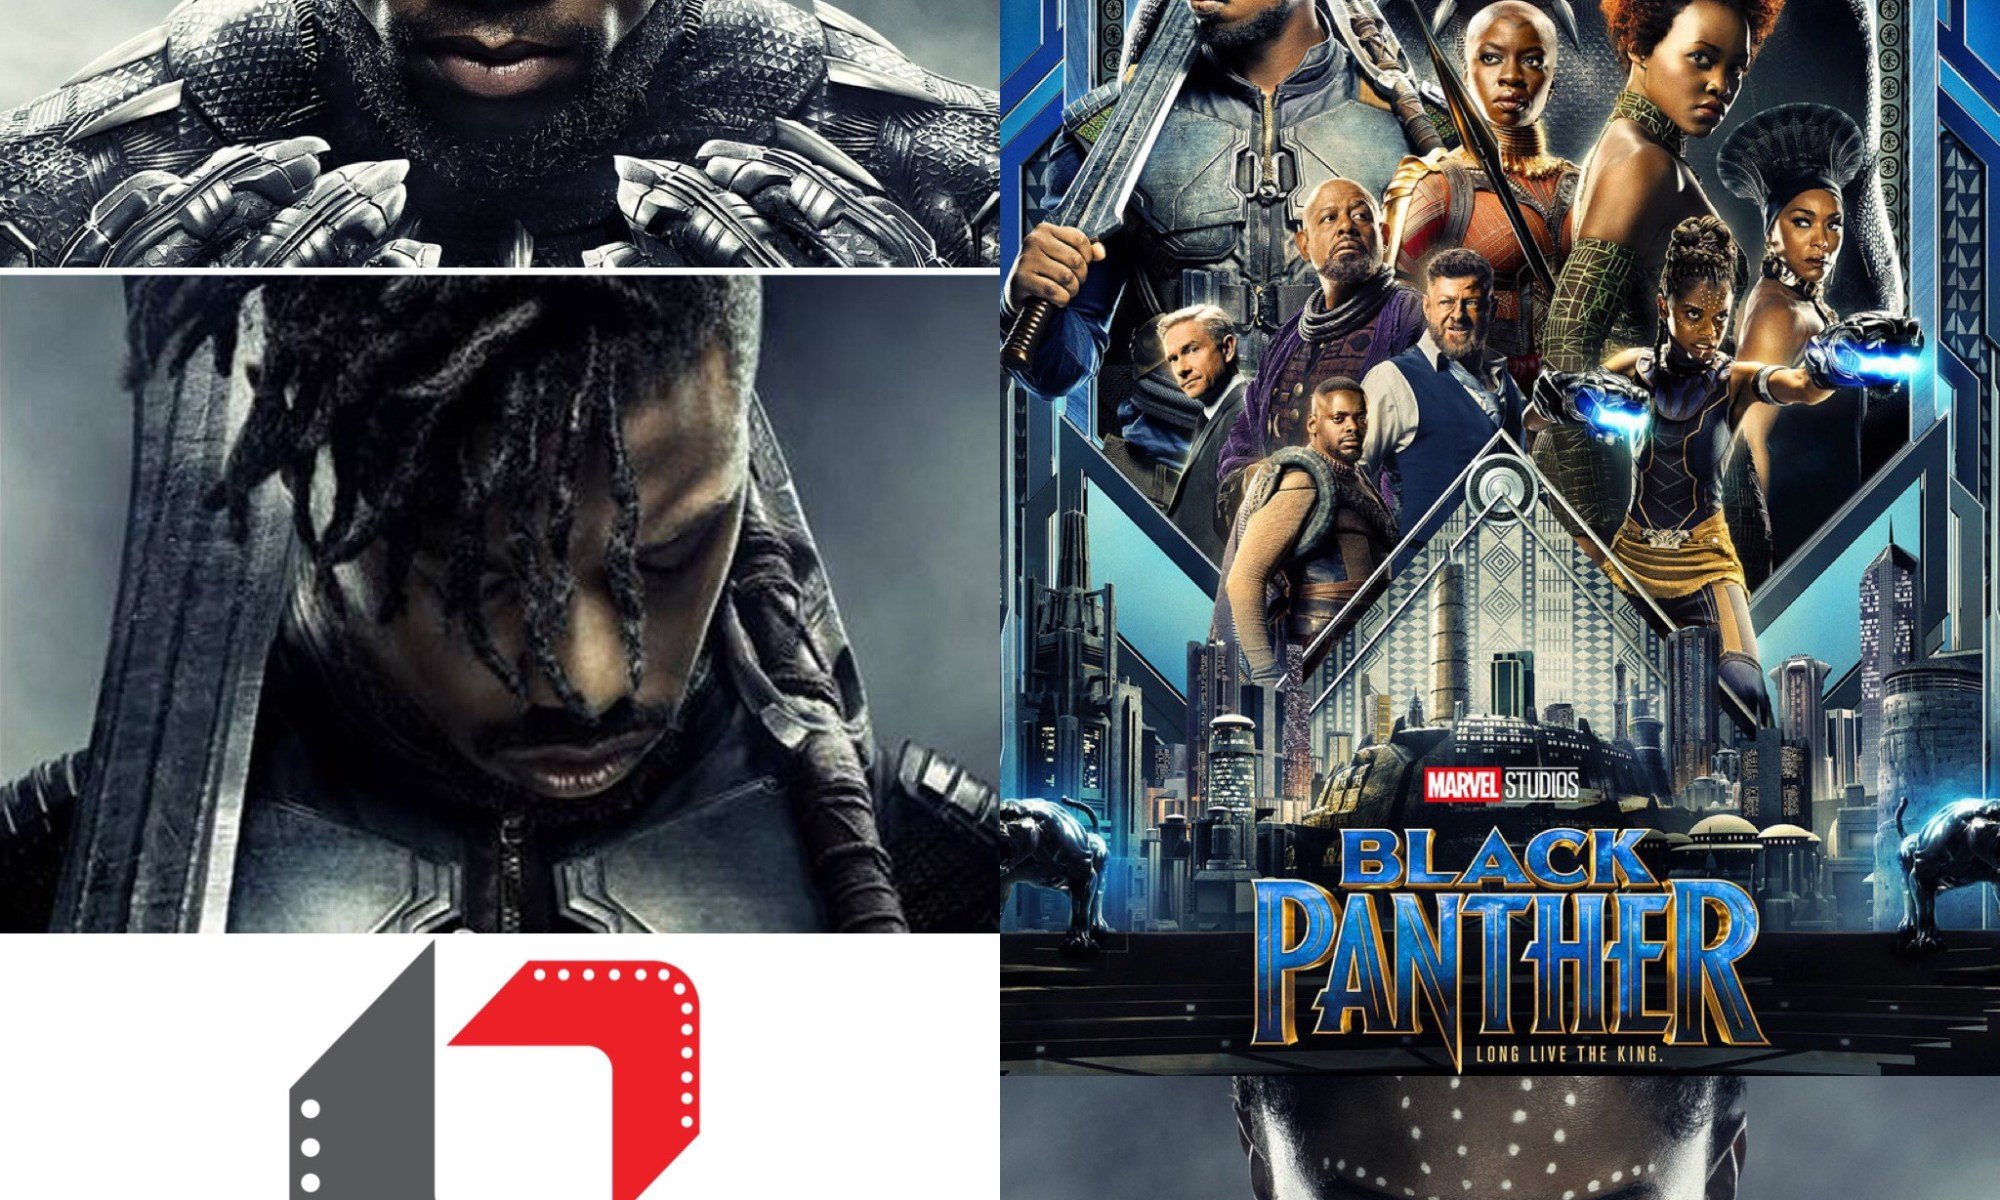 balck panther movie review killmonger and t'challa